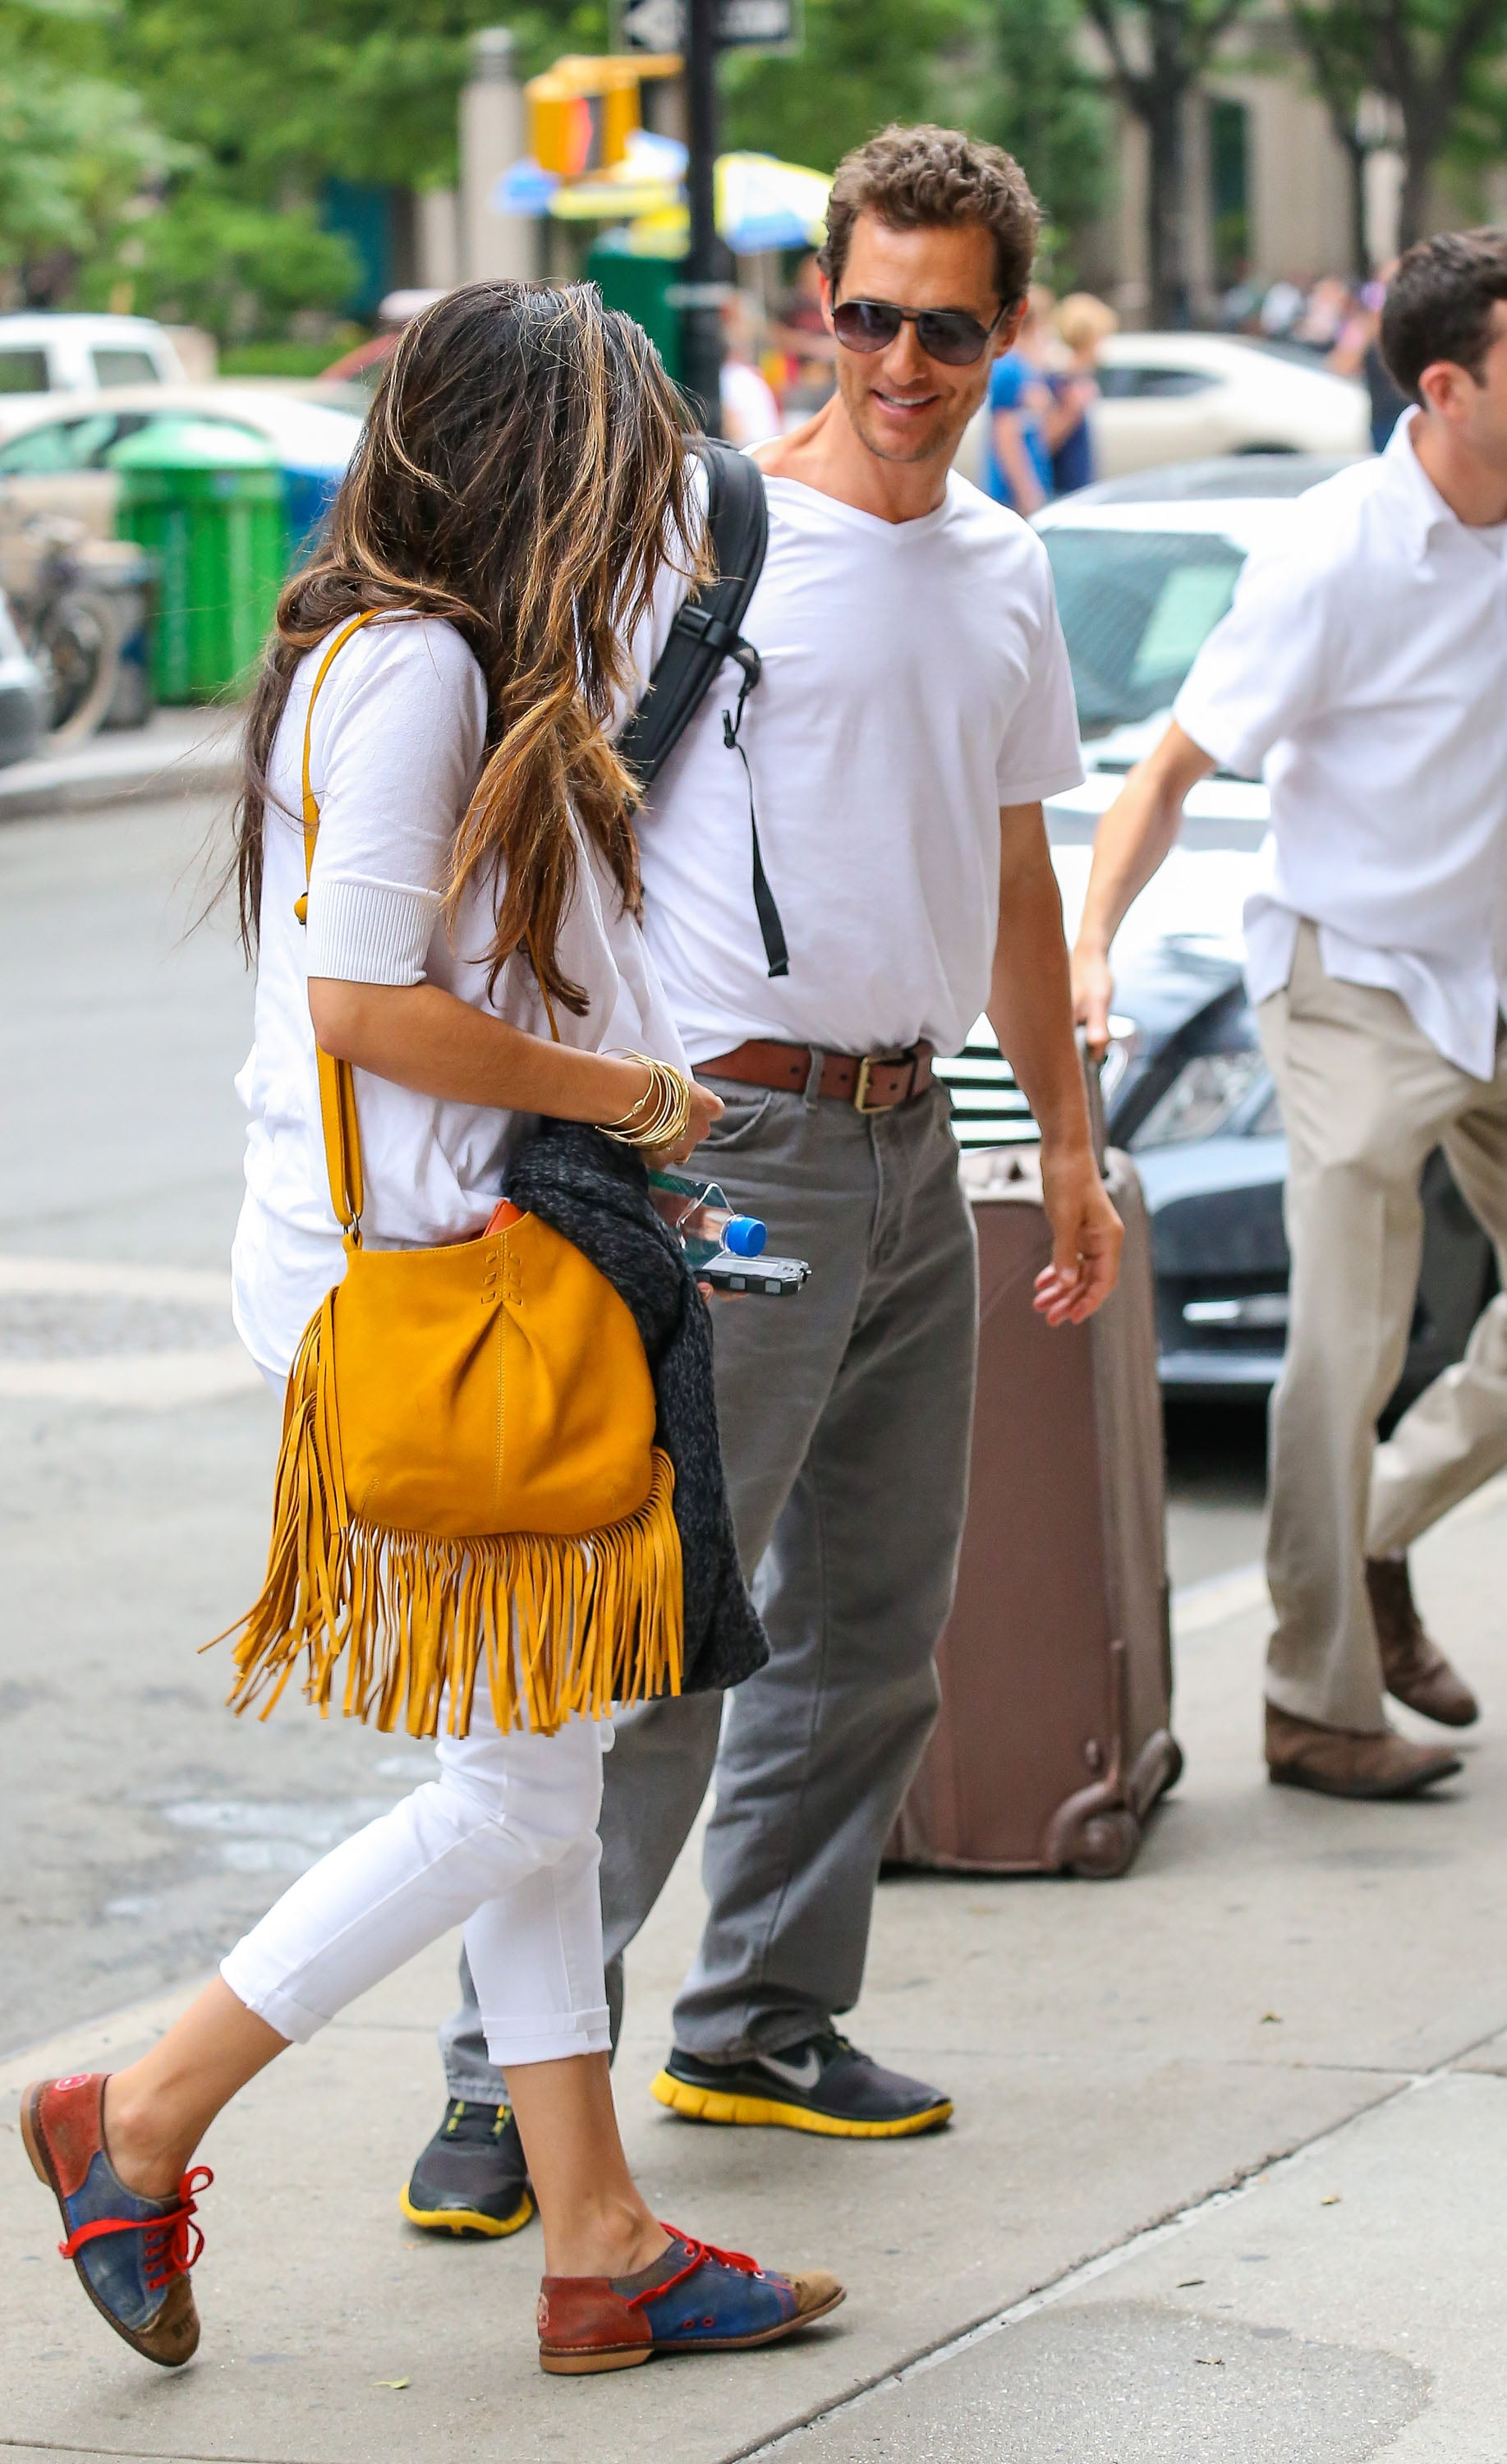 Matthew McConaughey and Camila Alves smiled at each other.